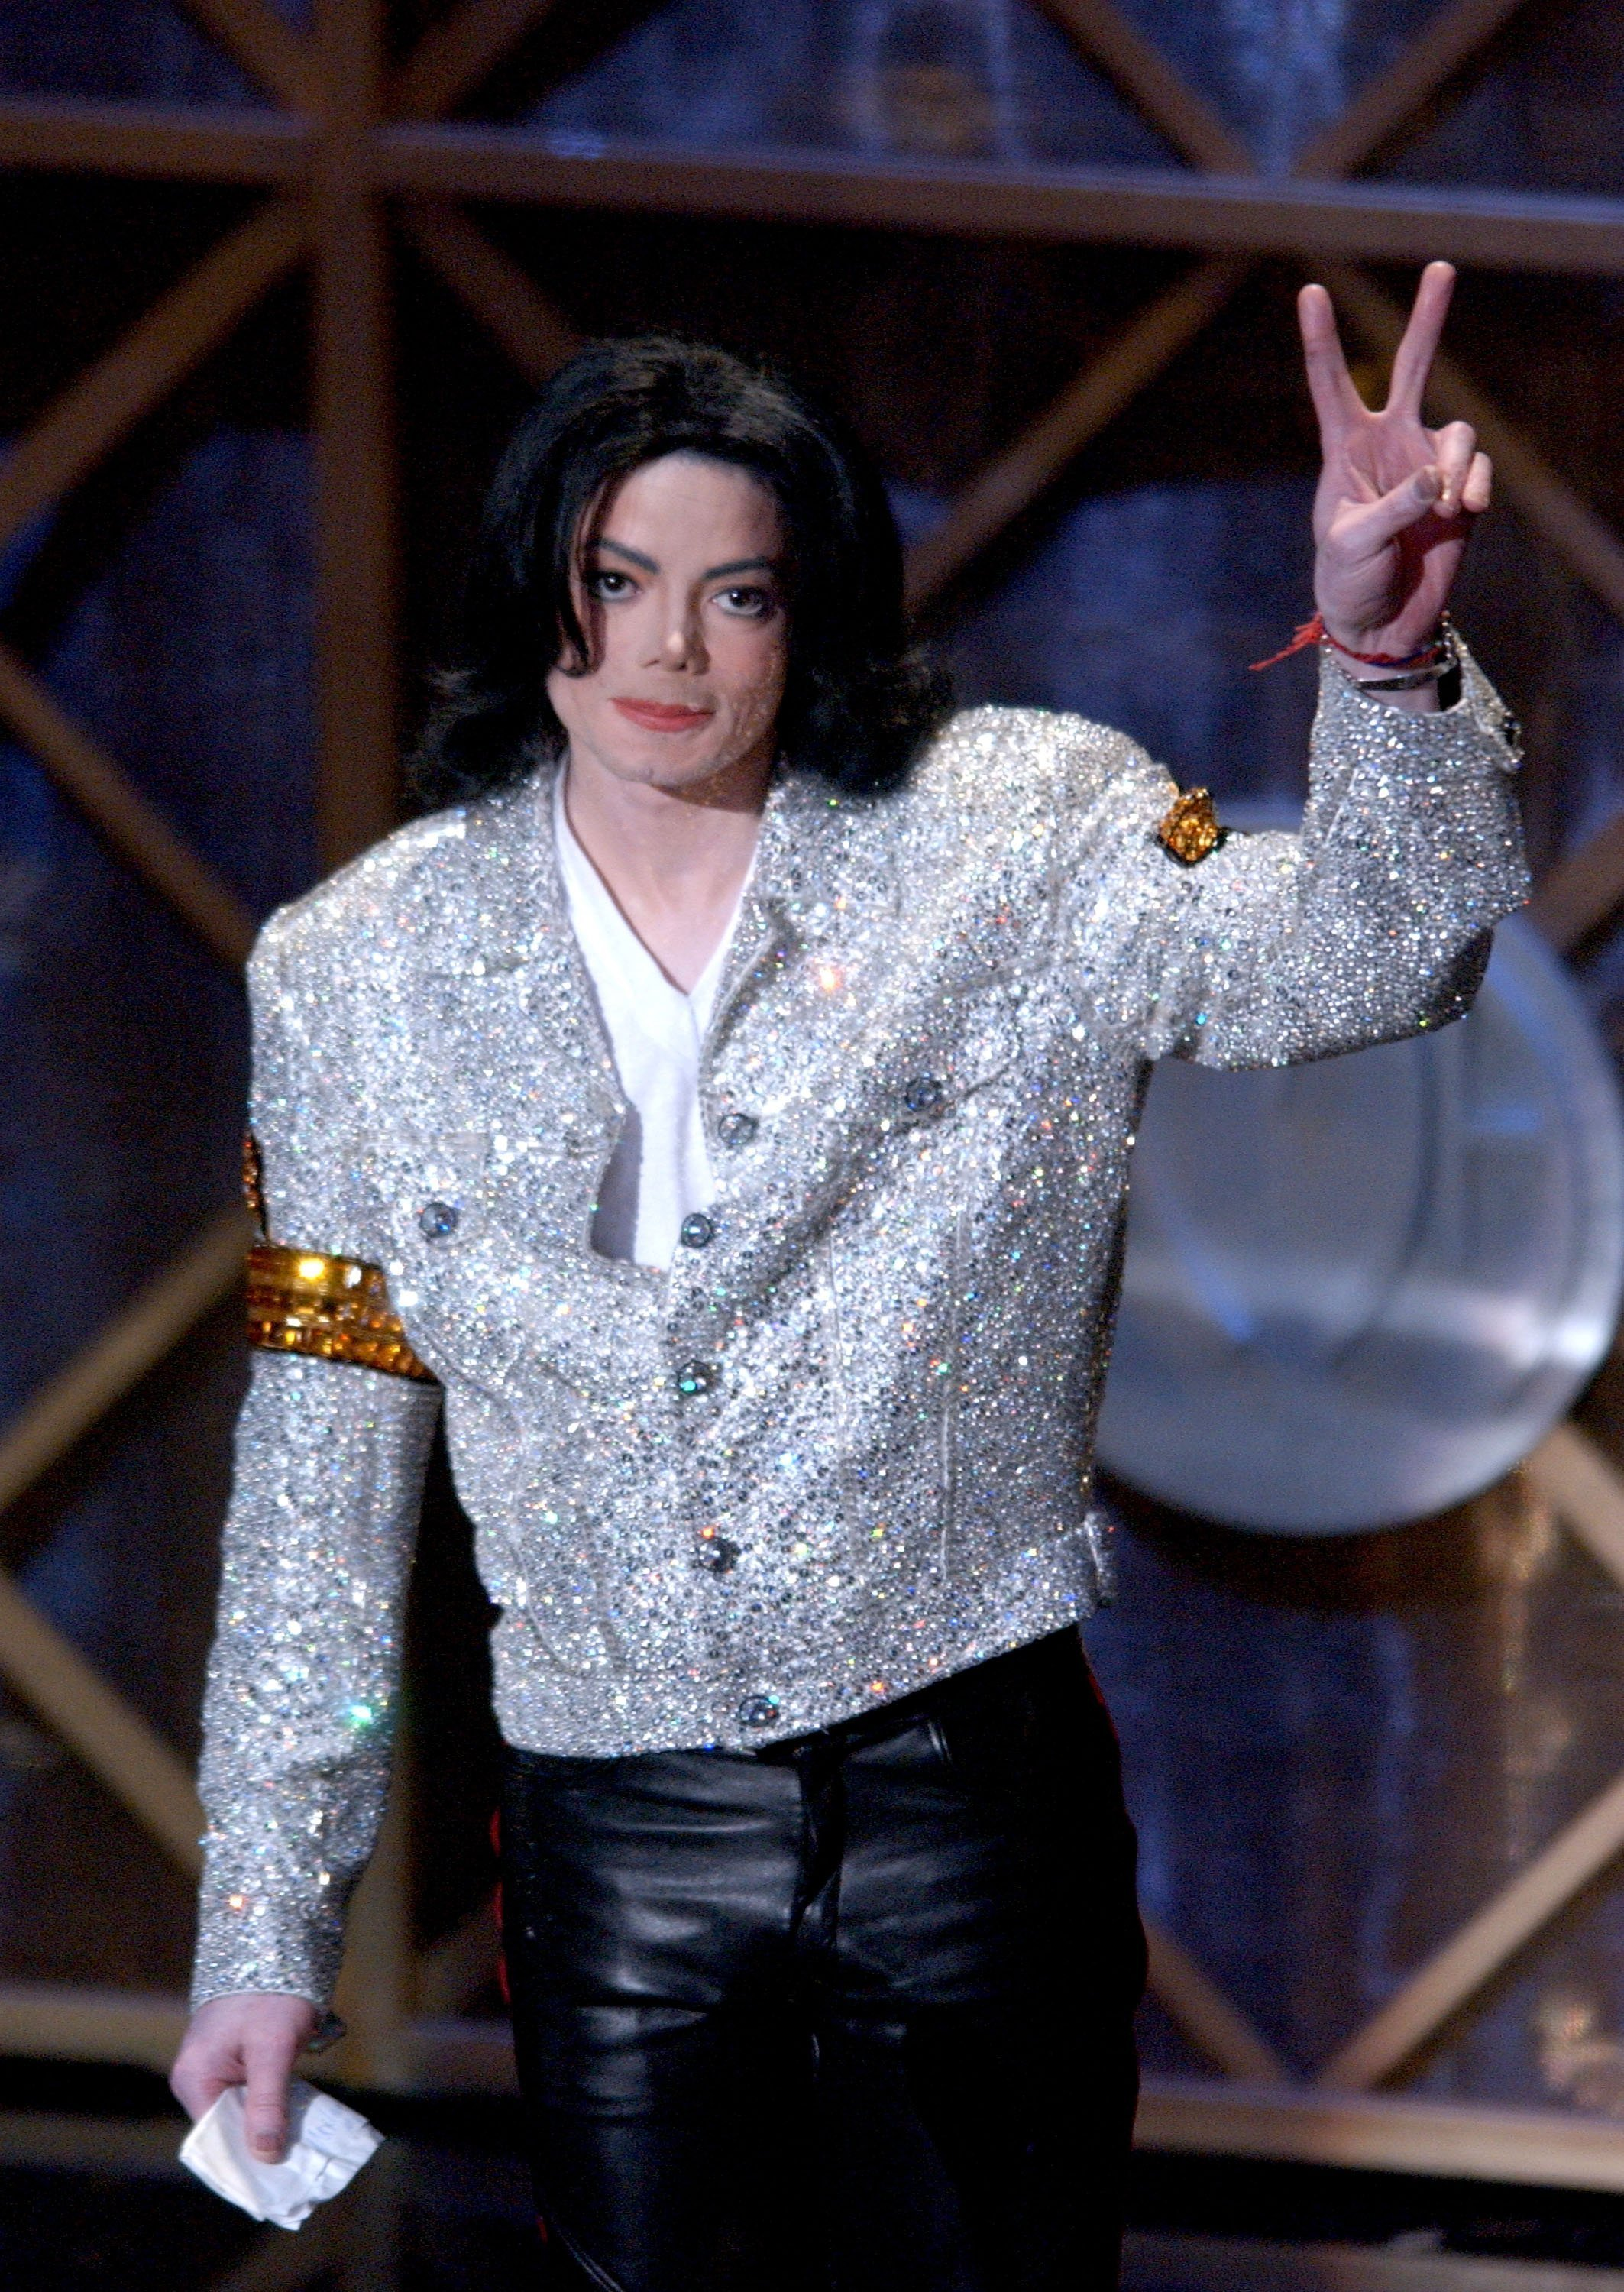 Michael Jackson at the 29th Annual American Music Awards at the Shrine Auditorium on Jan. 9, 2002 in Los Angeles. | Photo: Getty Images